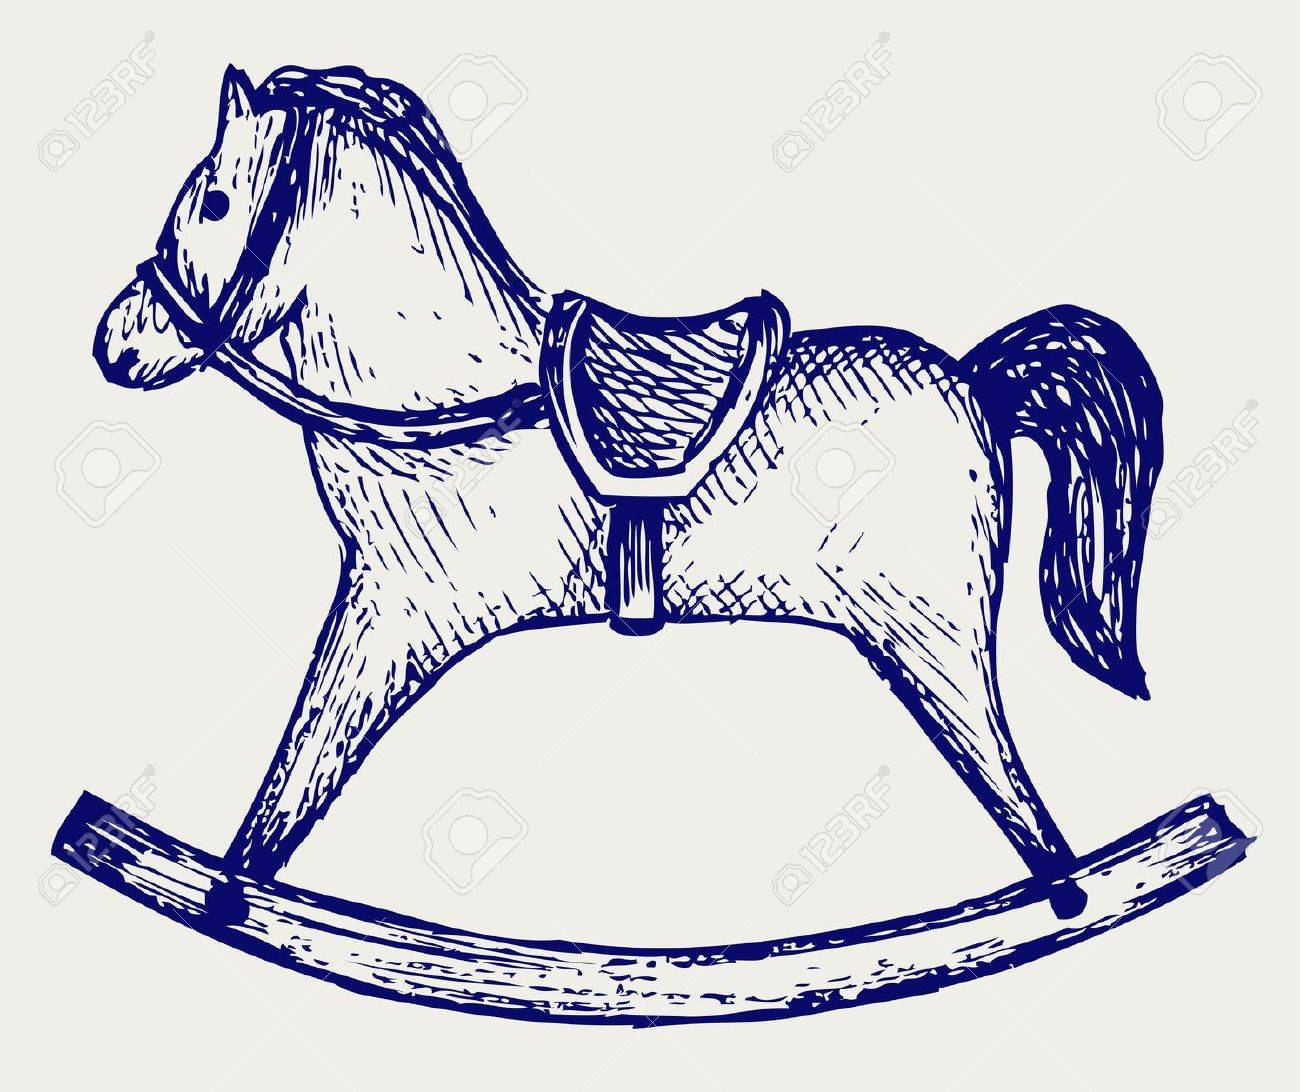 1300x1092 Wooden Rocking Horse Doodle Style Royalty Free Cliparts, Vectors